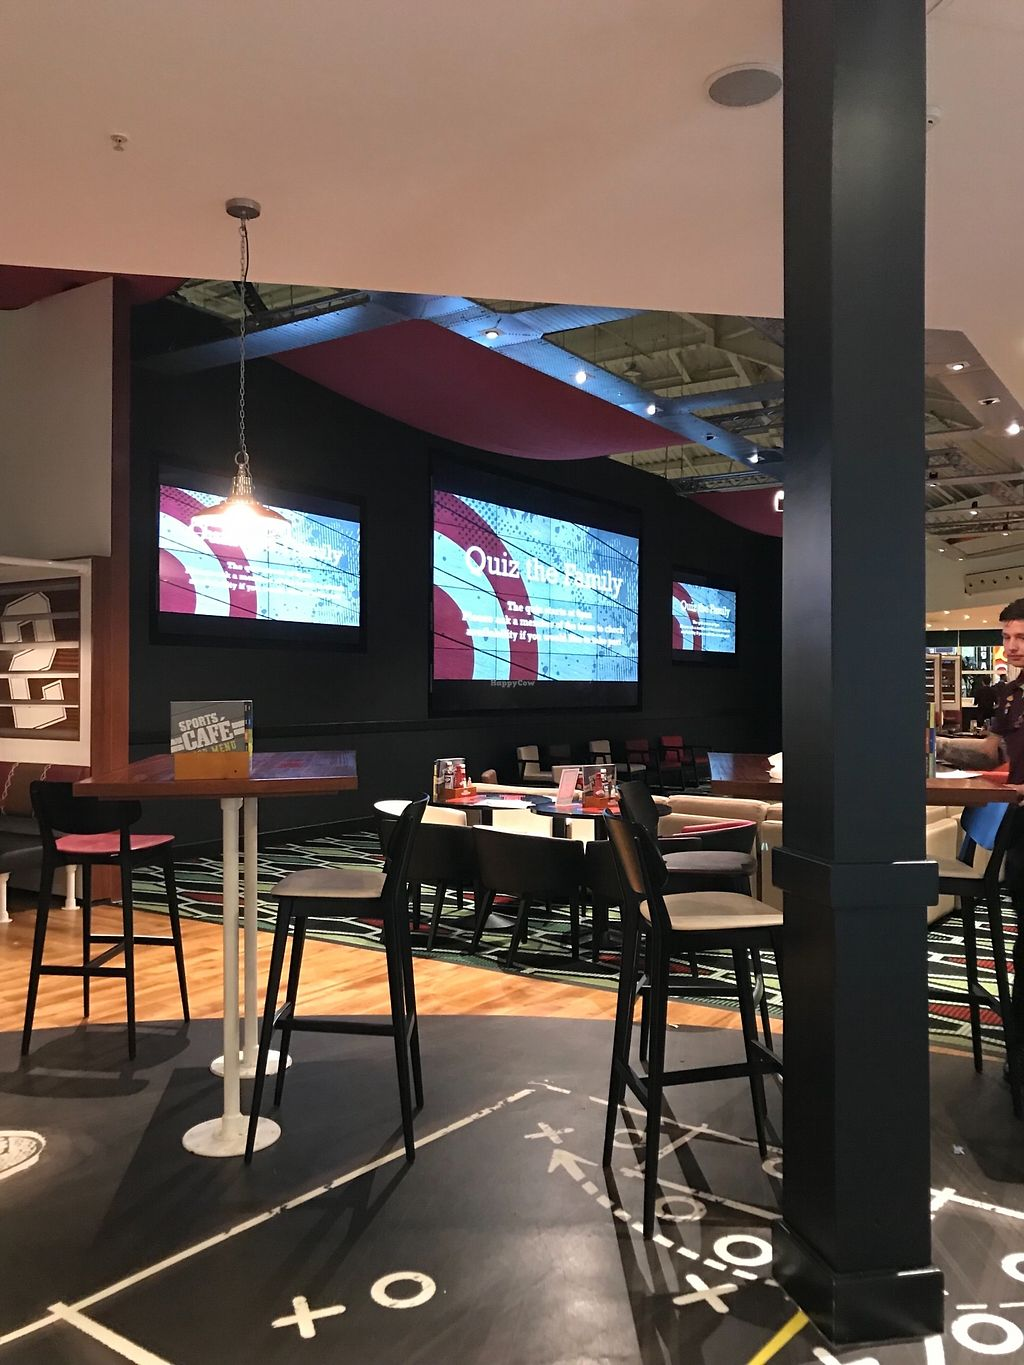 """Photo of Sports Cafe - Center Parcs  by <a href=""""/members/profile/20daisy00"""">20daisy00</a> <br/>Area overlooking sports court used for quiz nights <br/> March 29, 2018  - <a href='/contact/abuse/image/115999/377683'>Report</a>"""